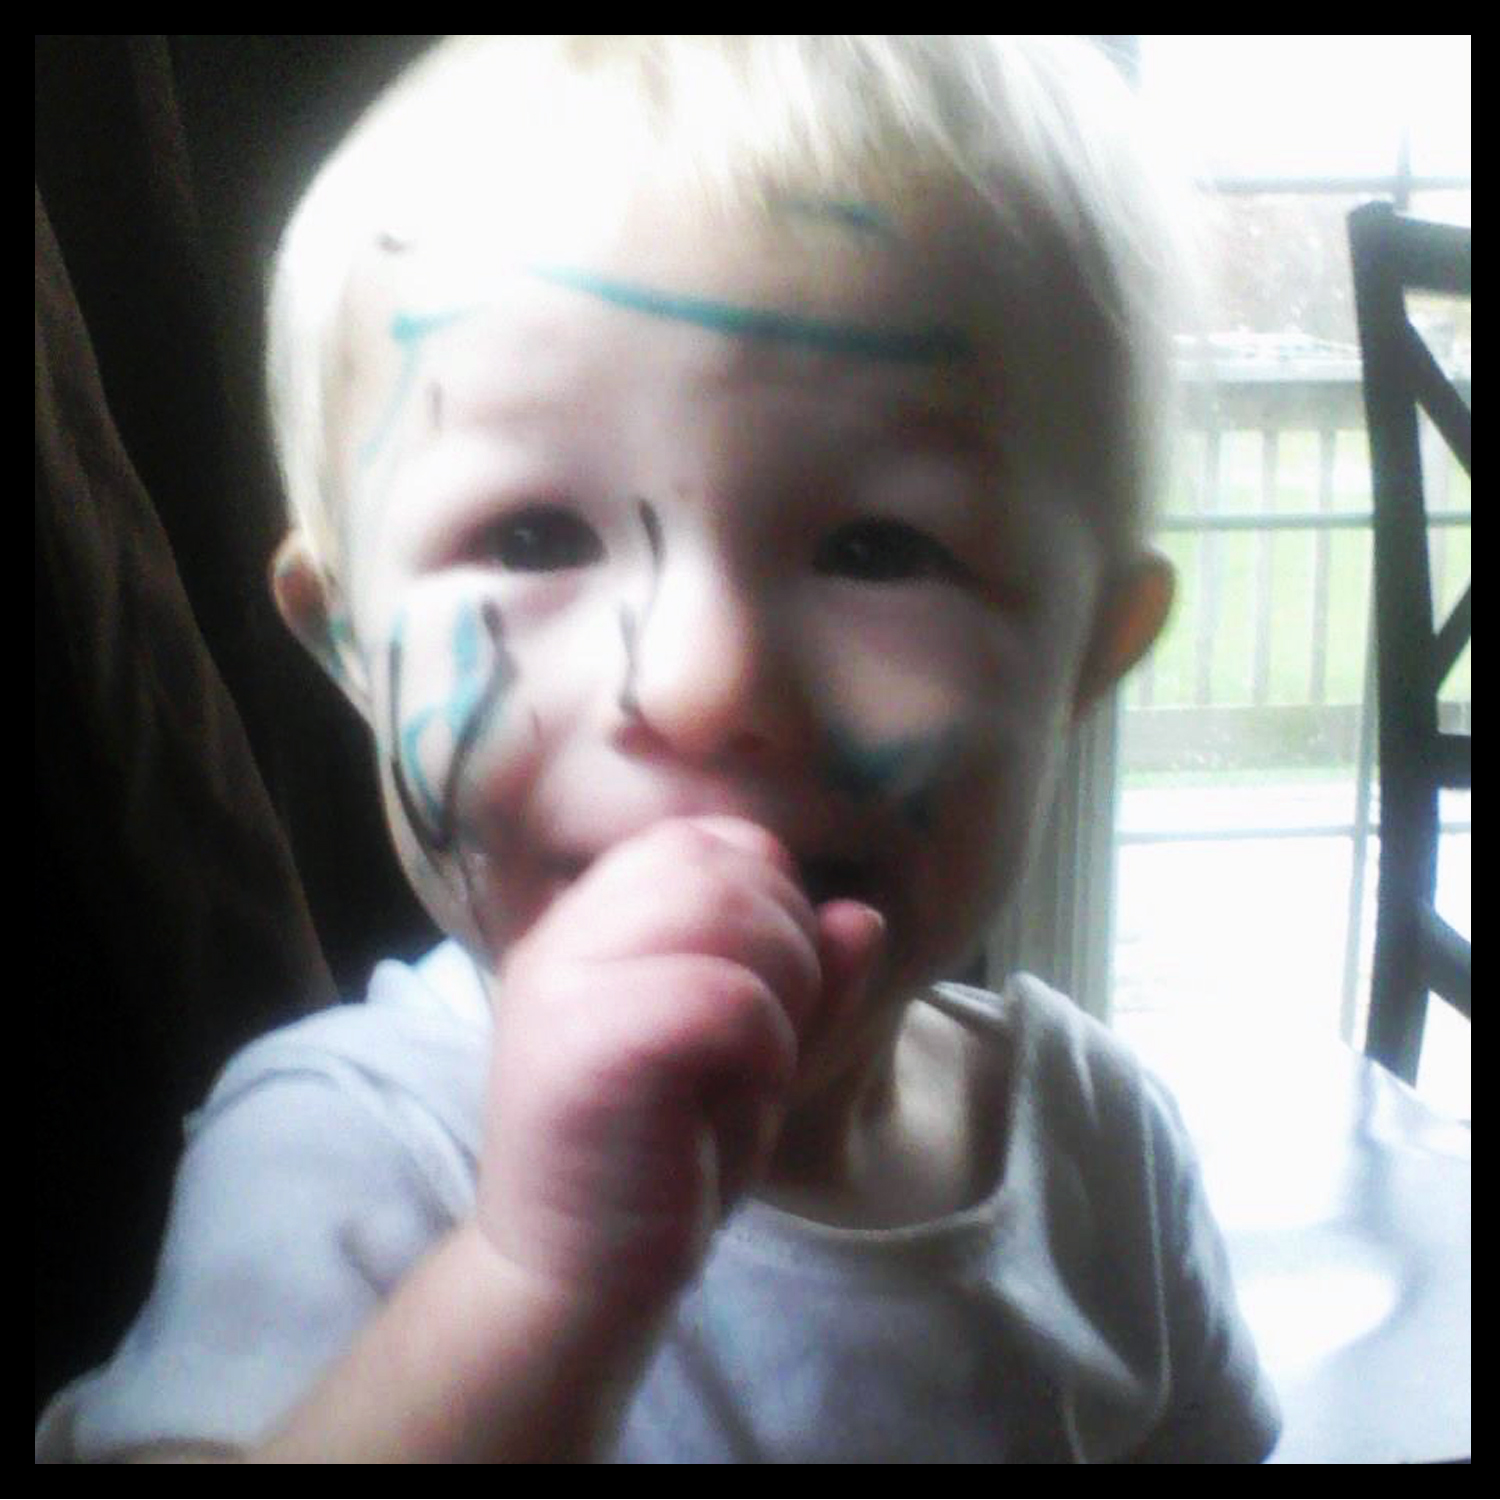 """2 year old Johnny and his sister had just come from a festival where they saw children having their faces painted. Johnny's sister decided to join in on the fun...and """"painted"""" her brother's face with permanent marker."""